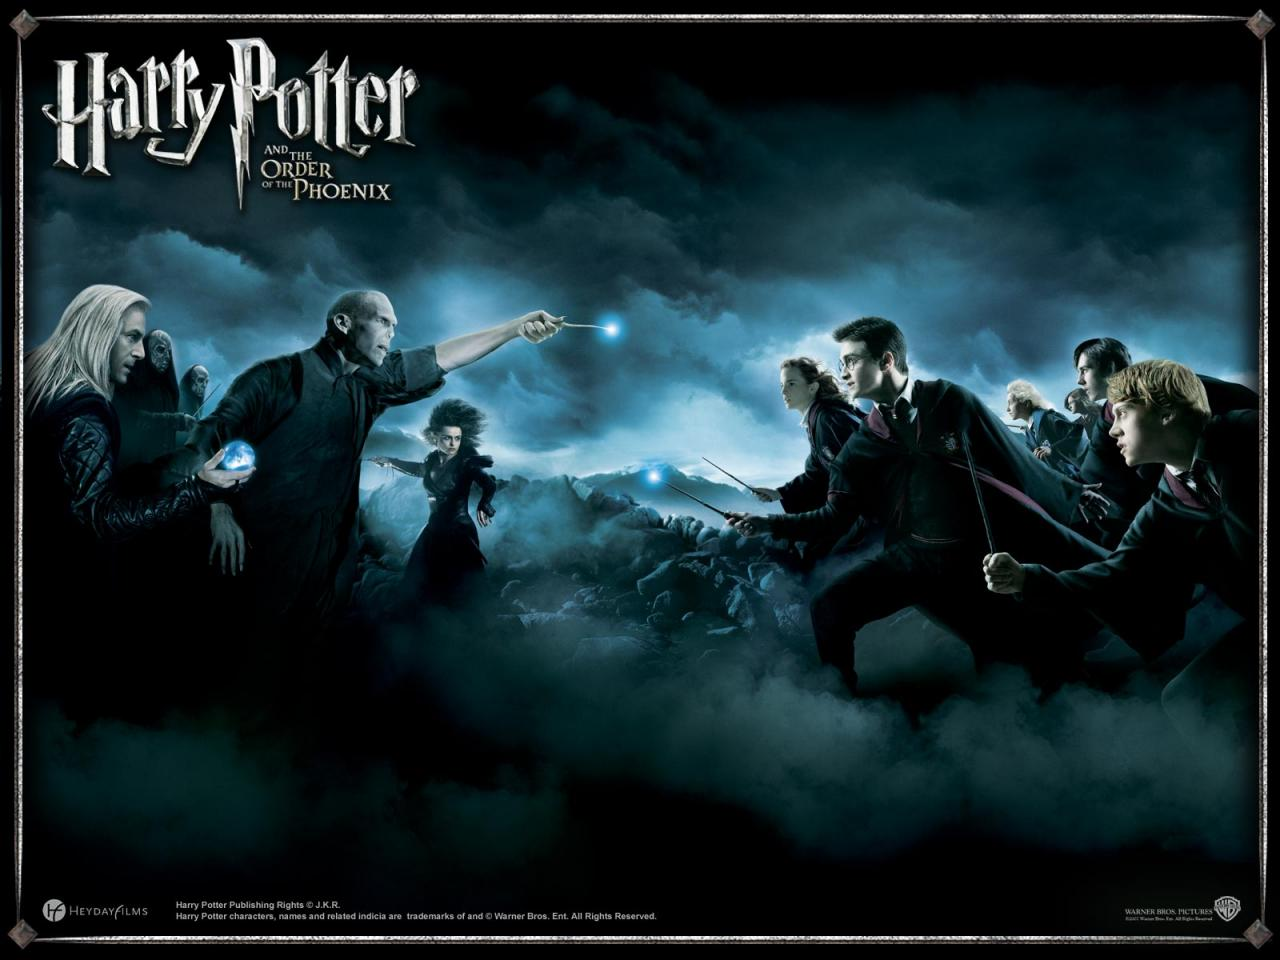 http://images5.fanpop.com/image/photos/24800000/Harry-Potter-harry-potter-and-the-order-of-the-phoenix-24888806-1280-960.jpg